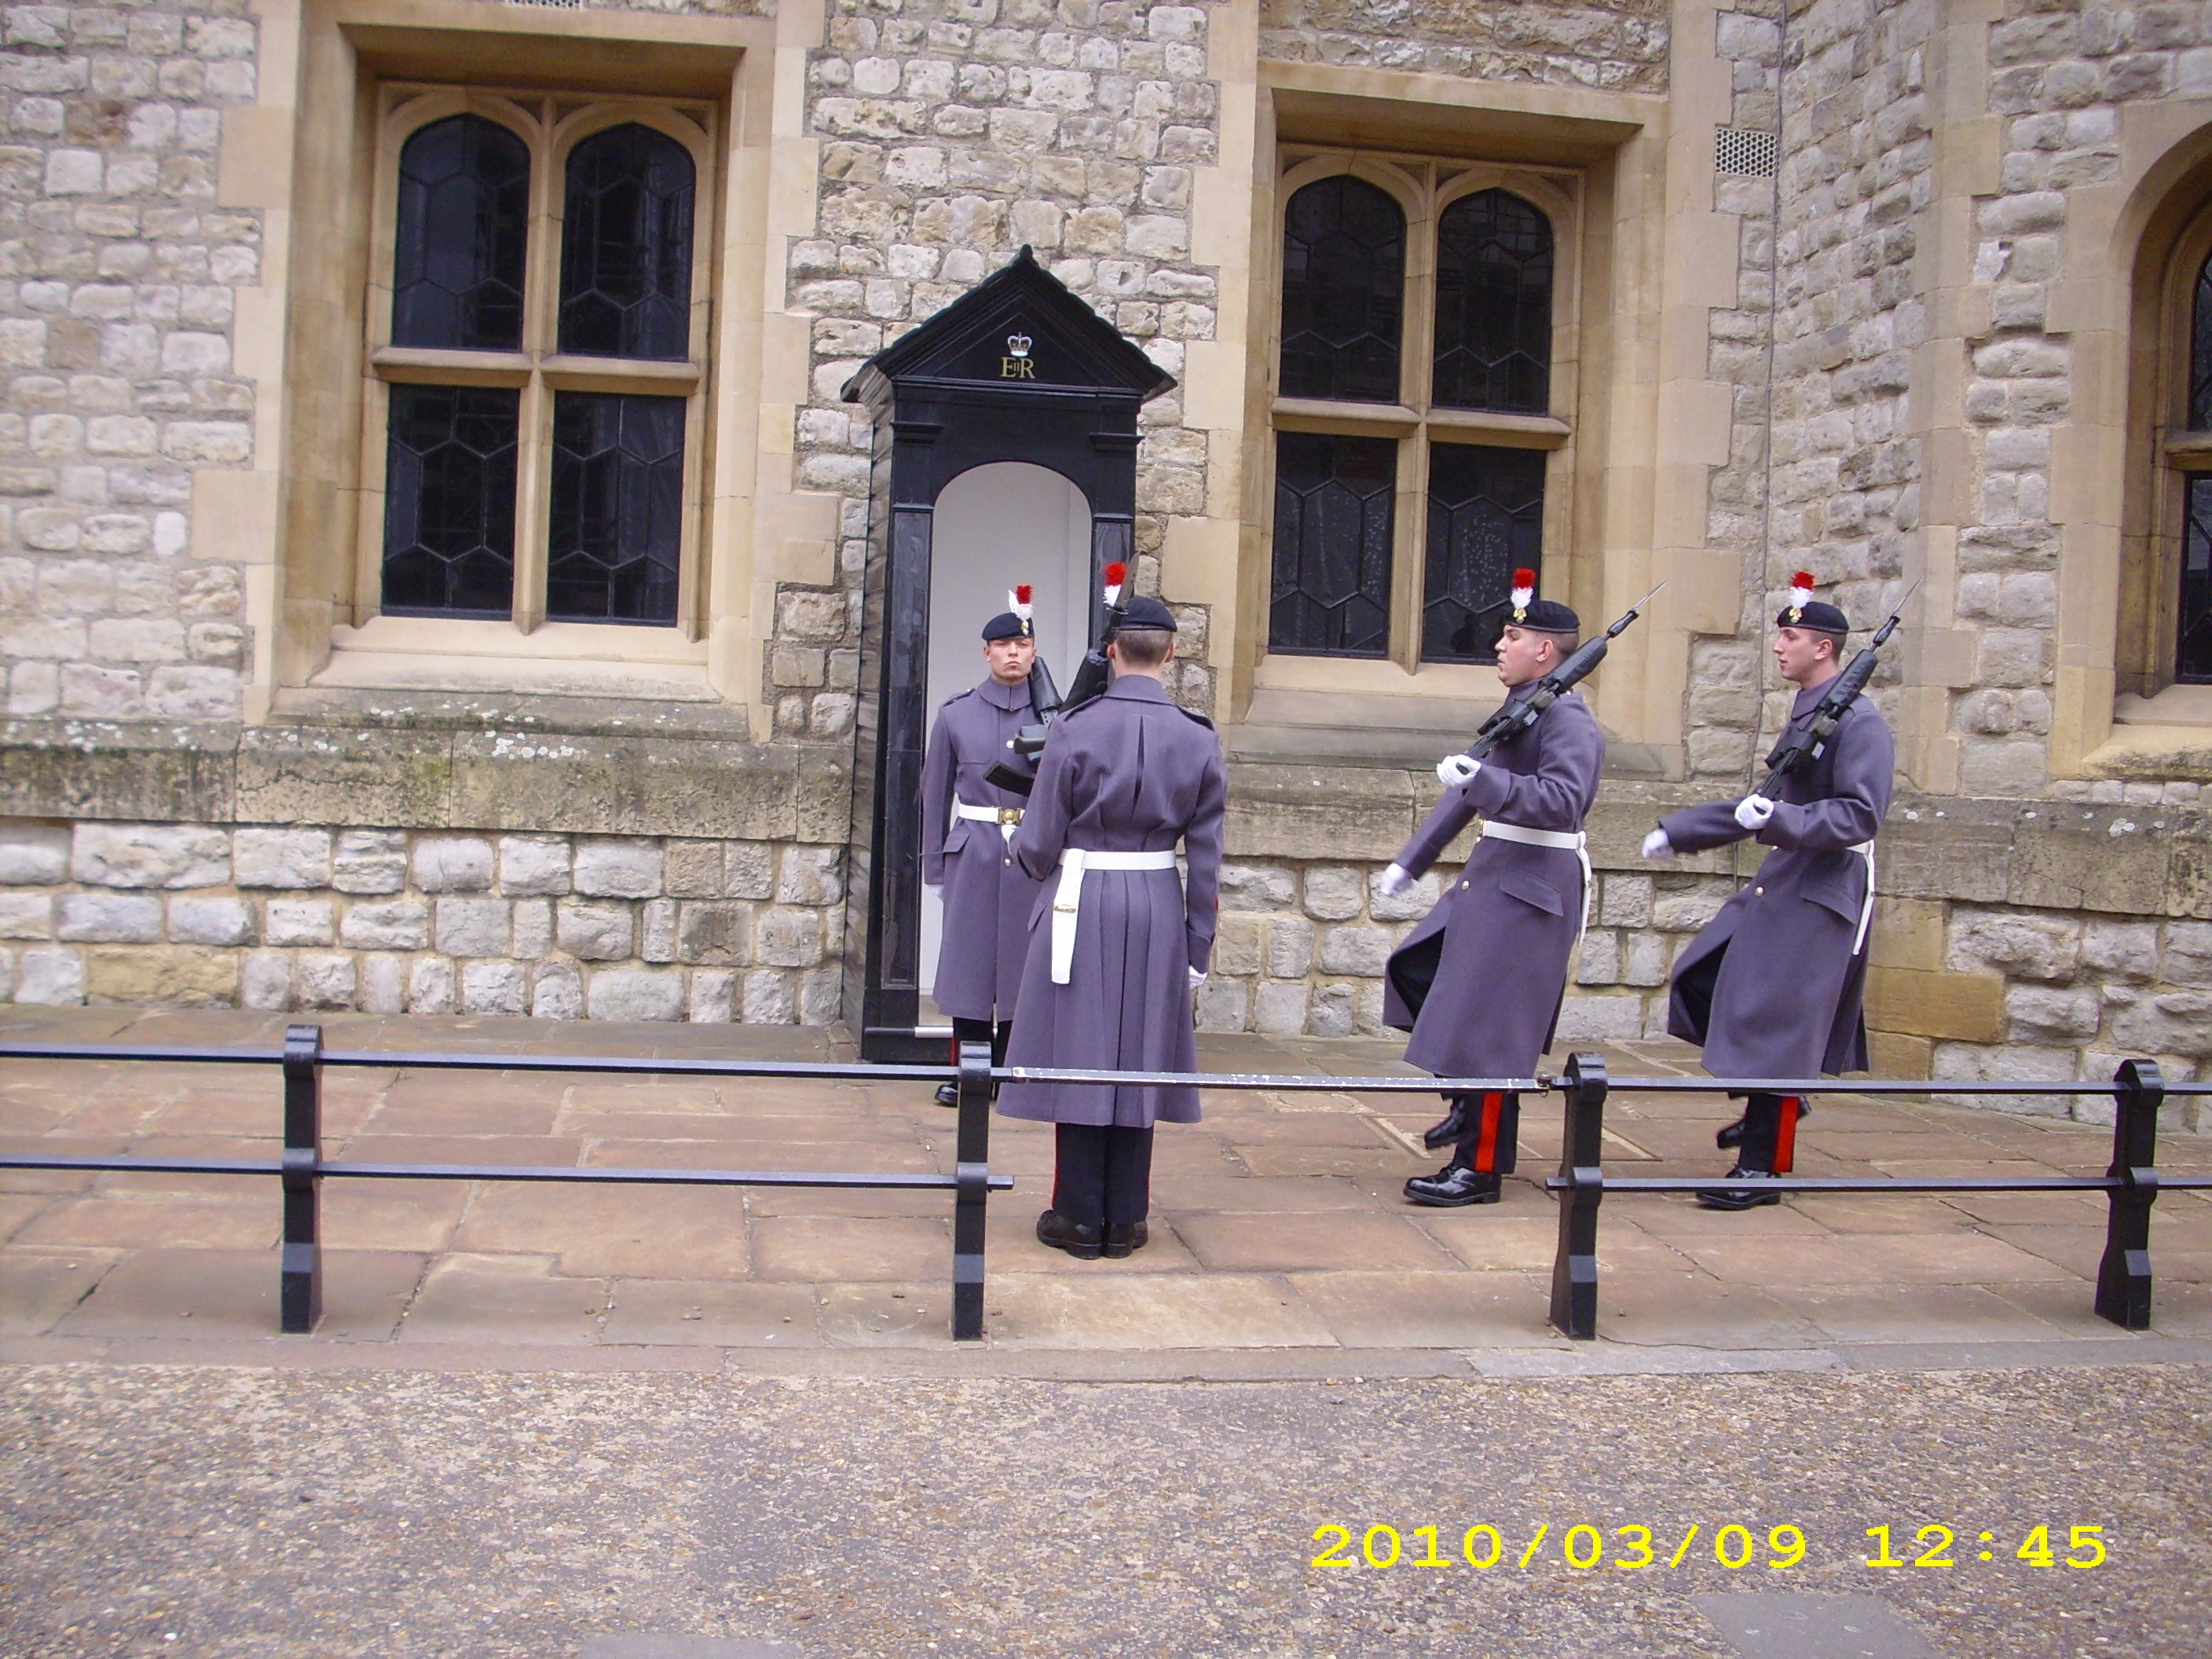 Cambio de guardia en el Buckingham Palace